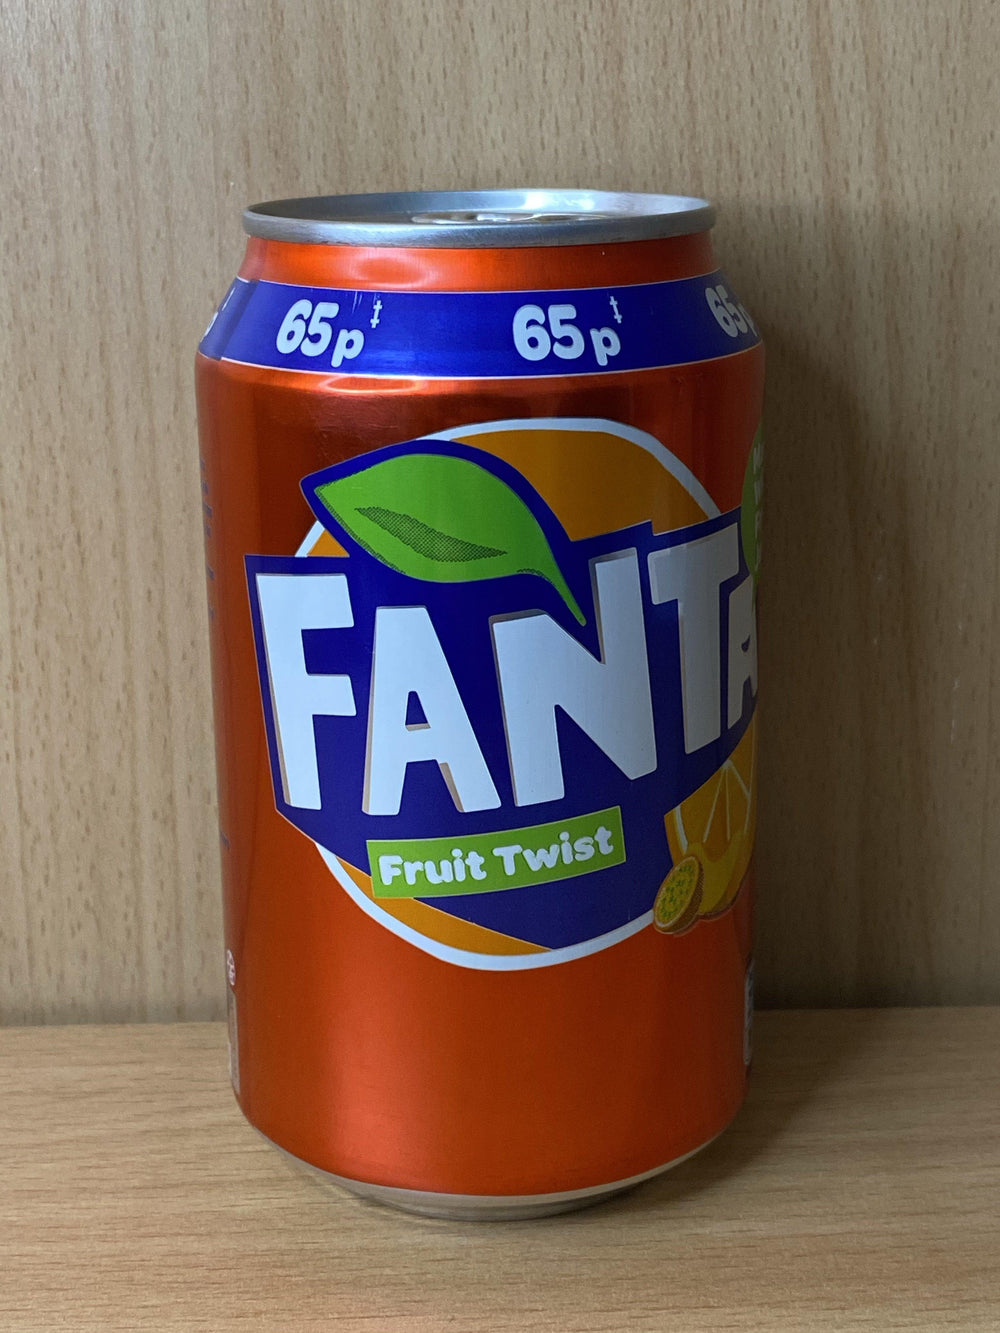 Fanta fruit twist - Woodward's Confection Limited